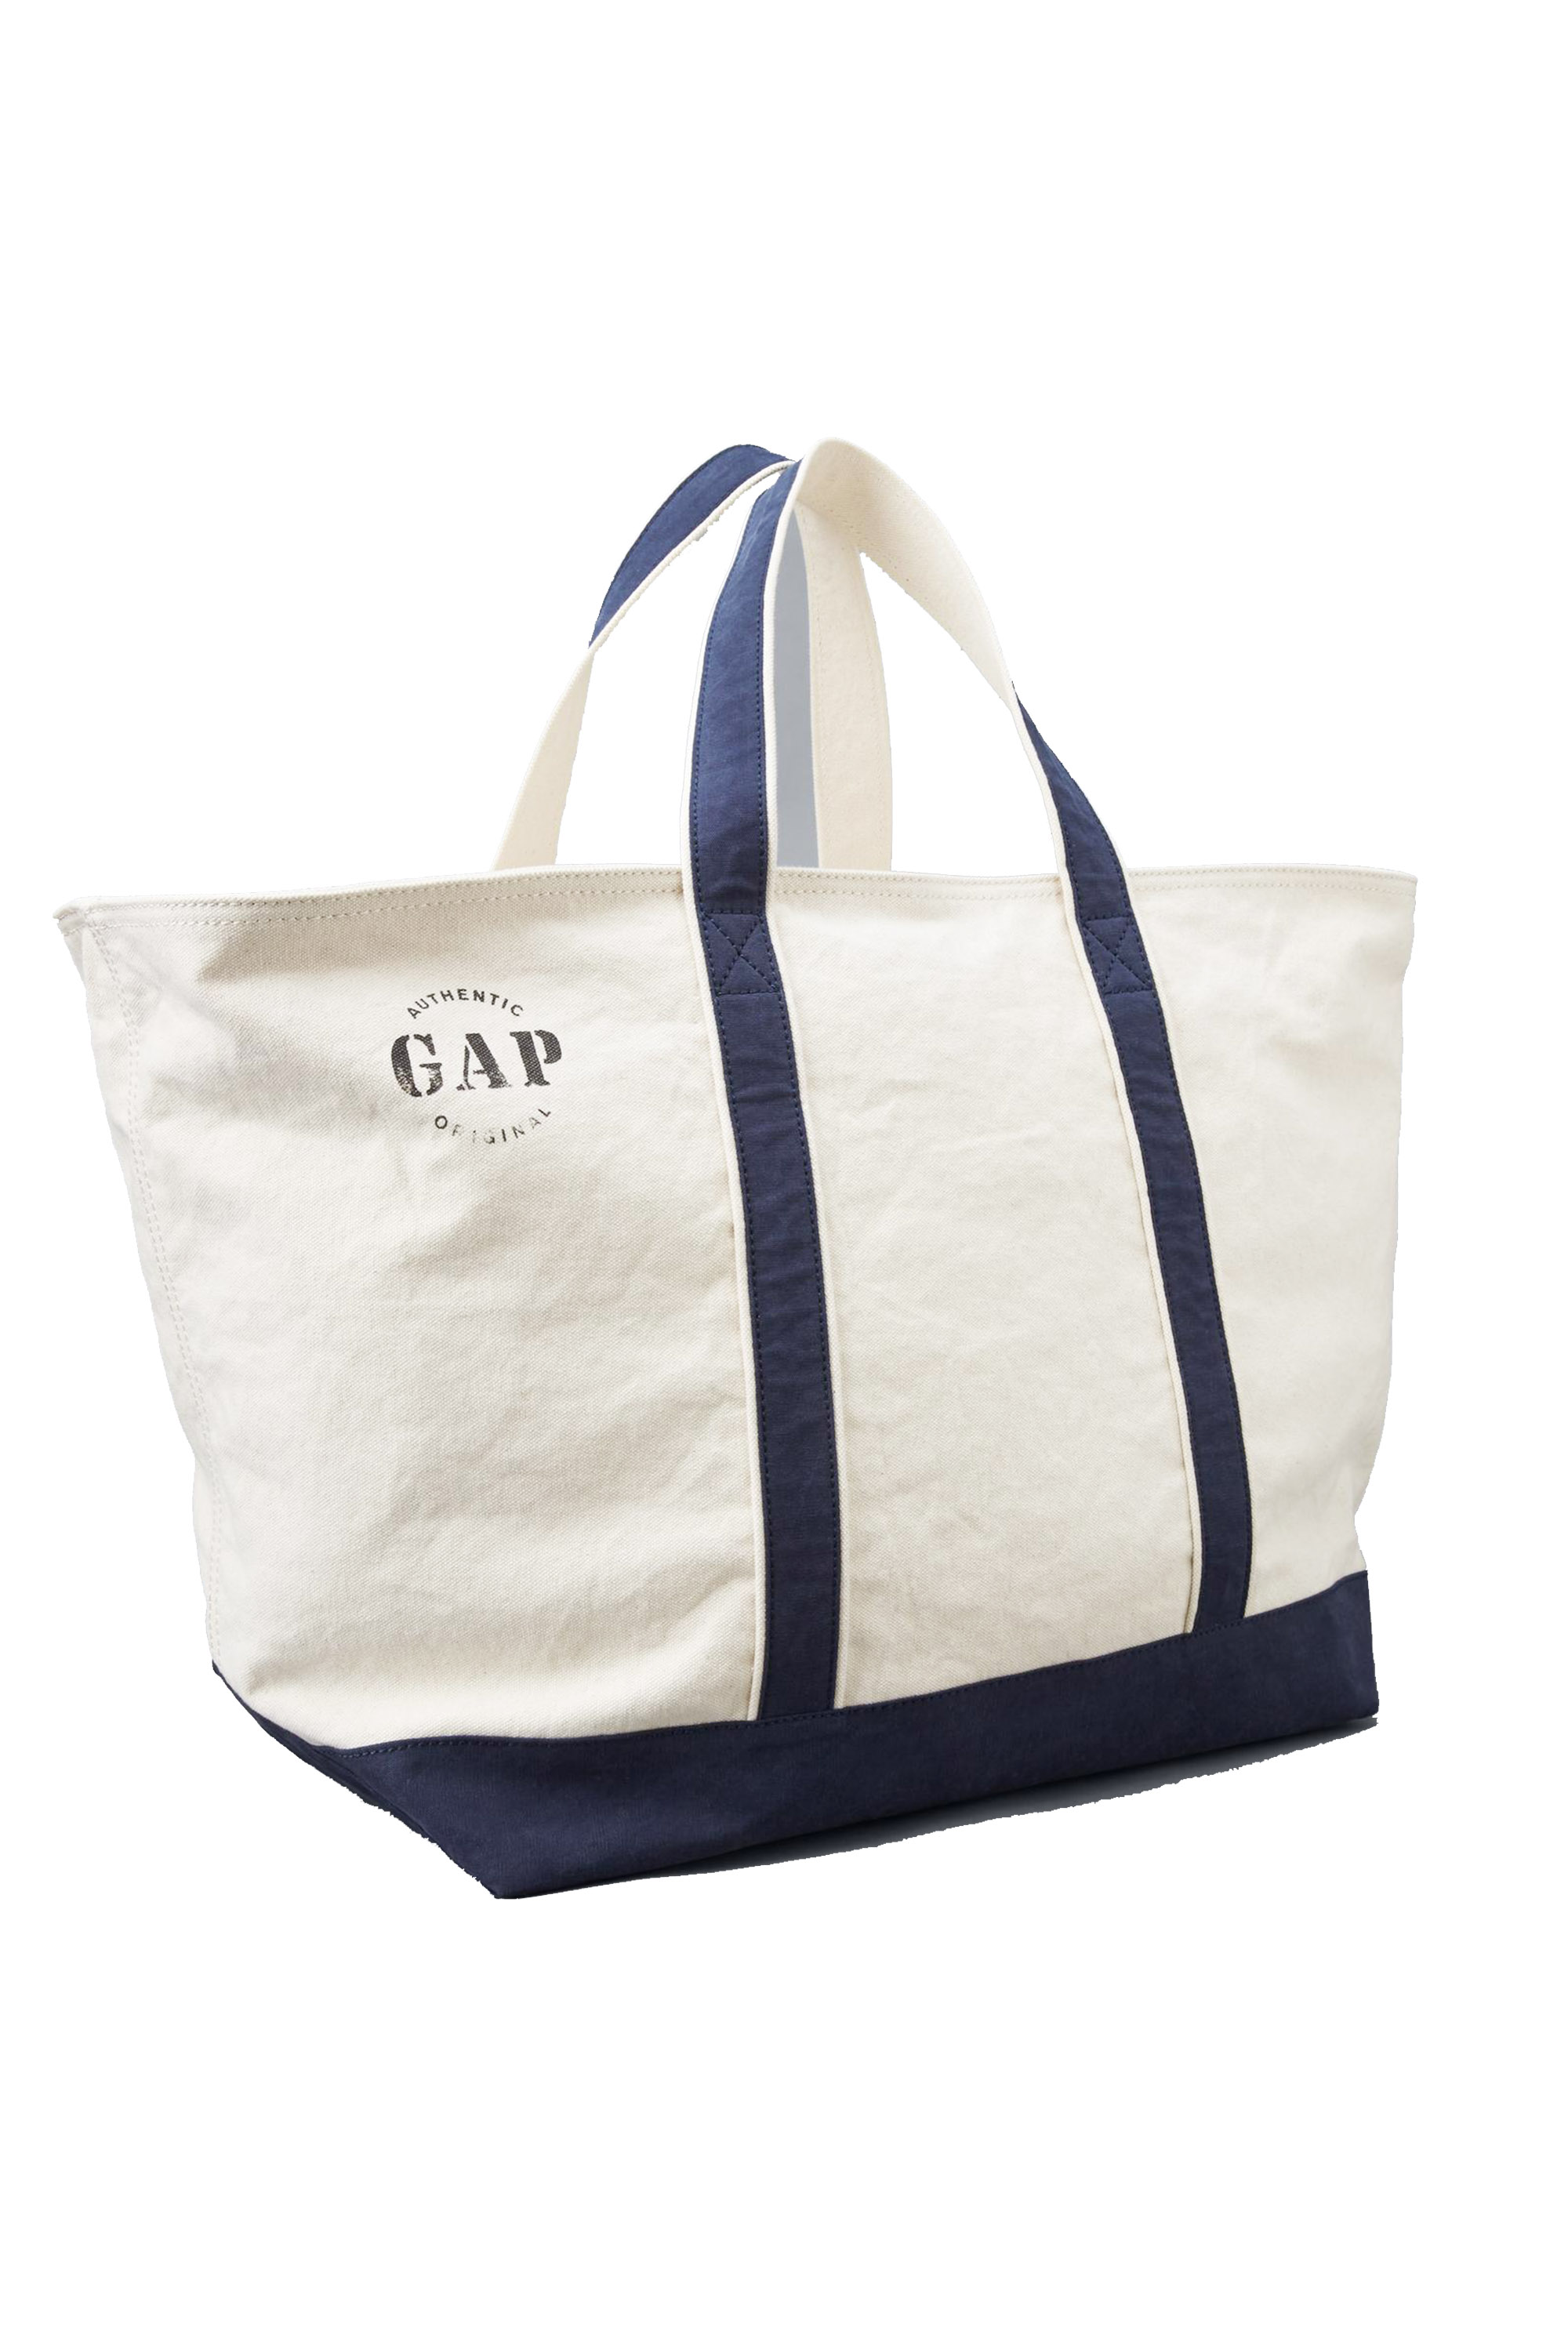 23 Best Weekender and Travel Bags for Women - Cute and Cheap ...